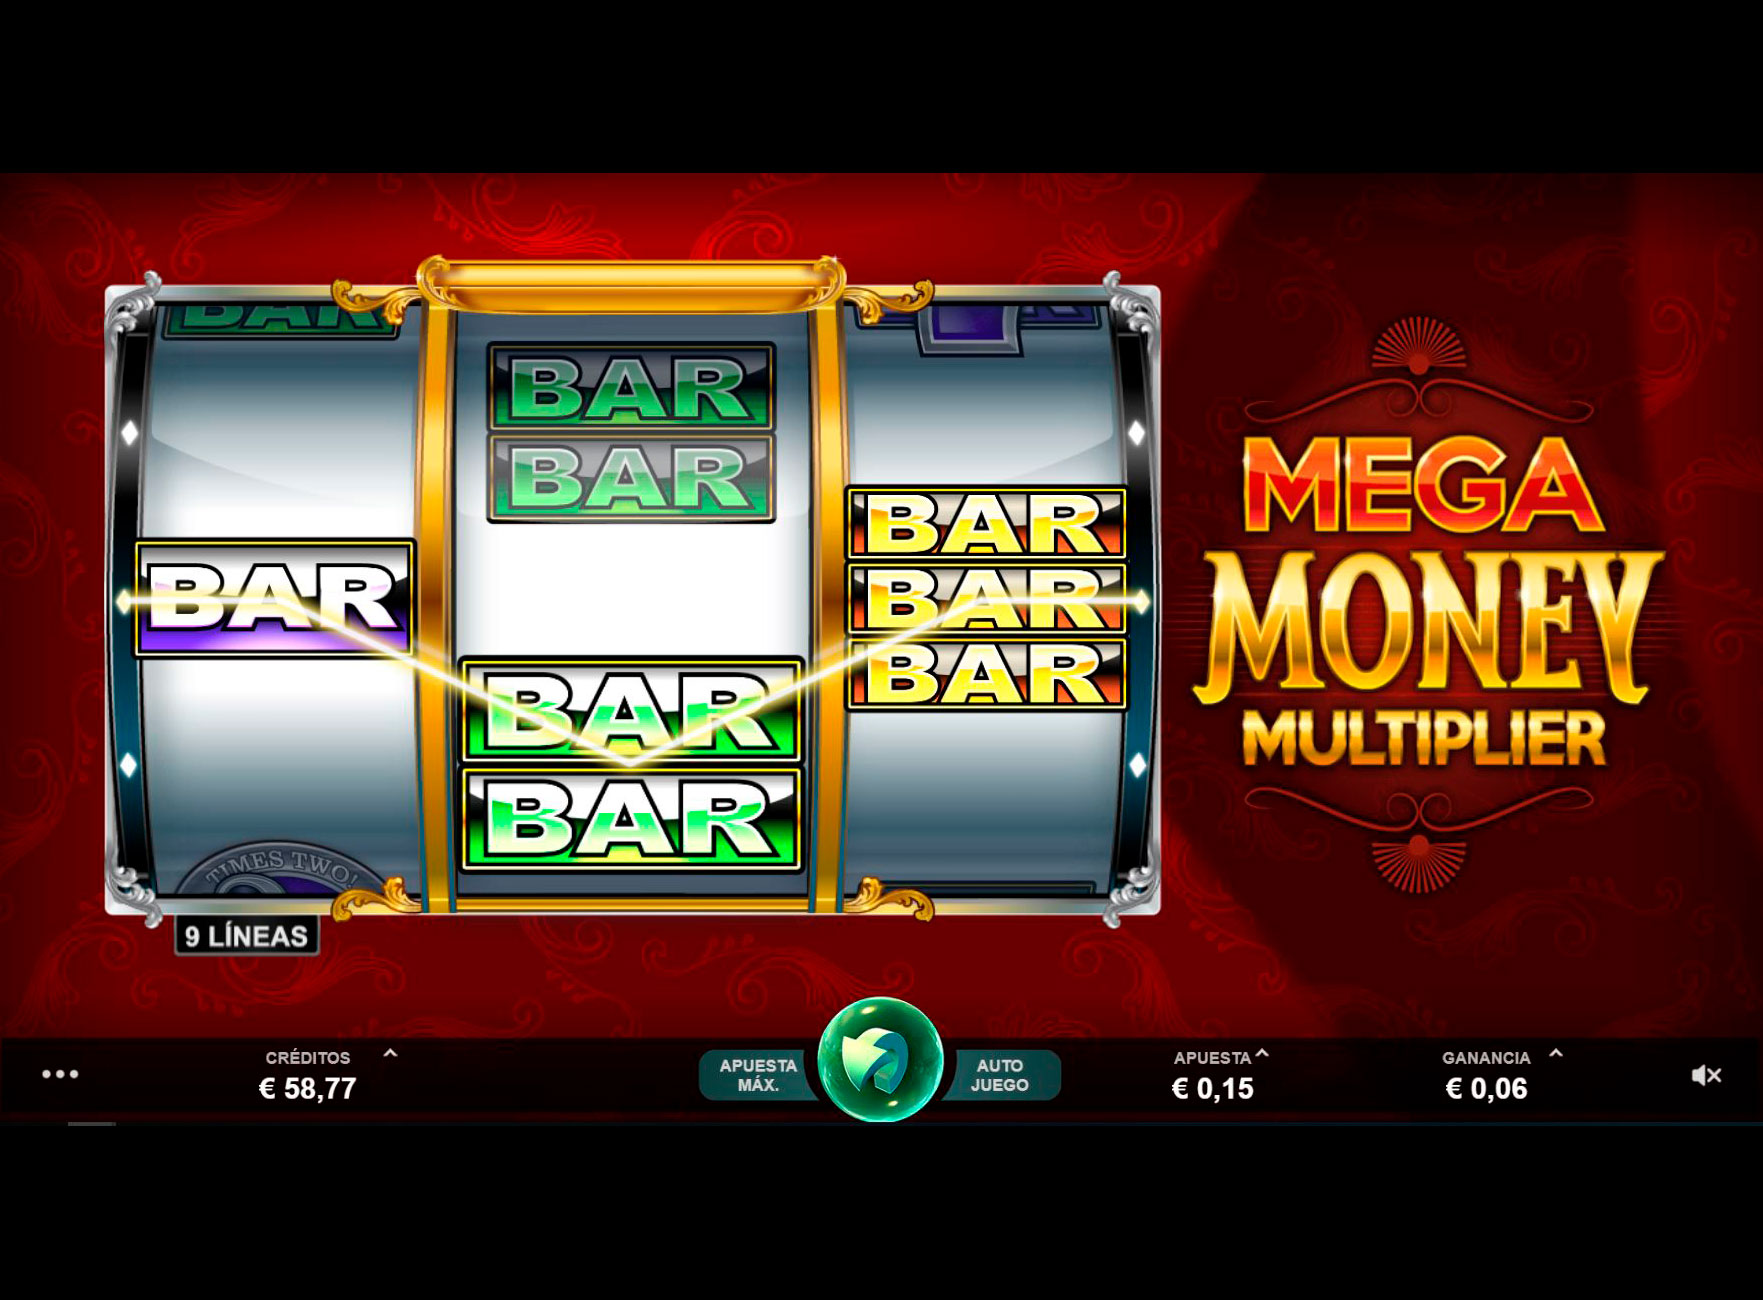 Slot Mega Money Multiplier